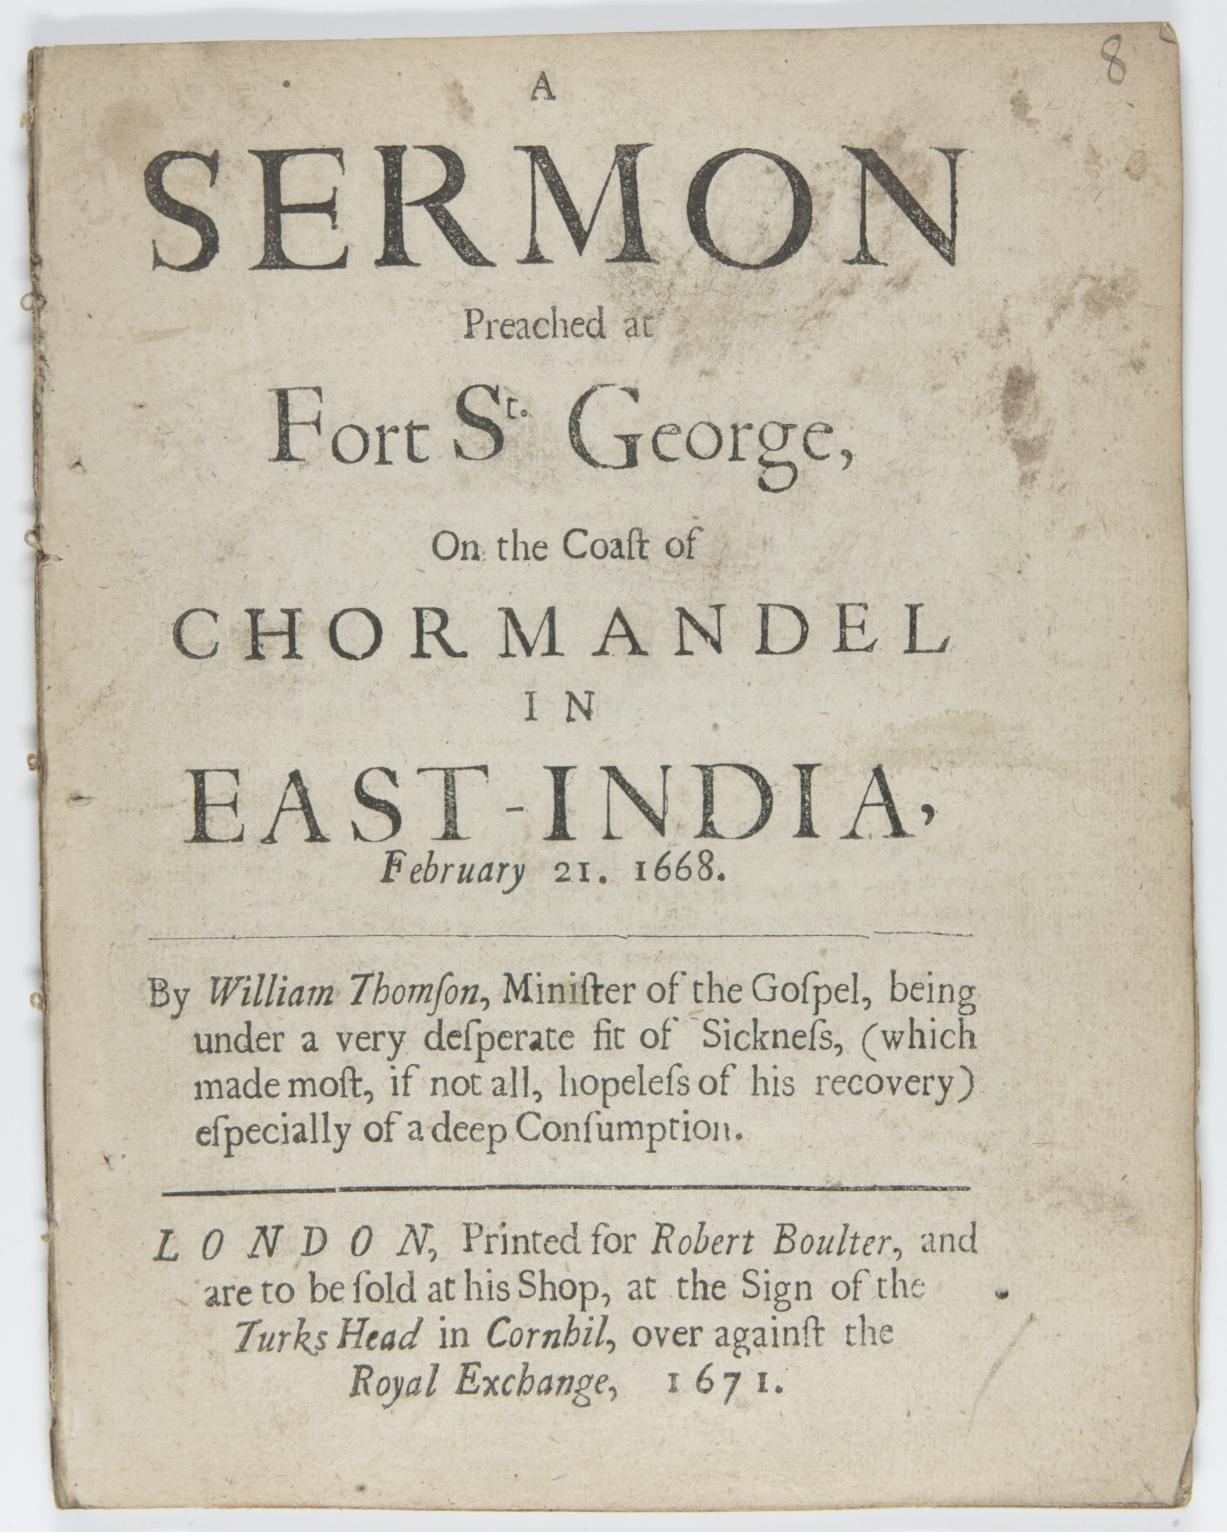 A sermon preached at Fort St. George on the coast of Chormandel in East India, February 21 1668.jpg